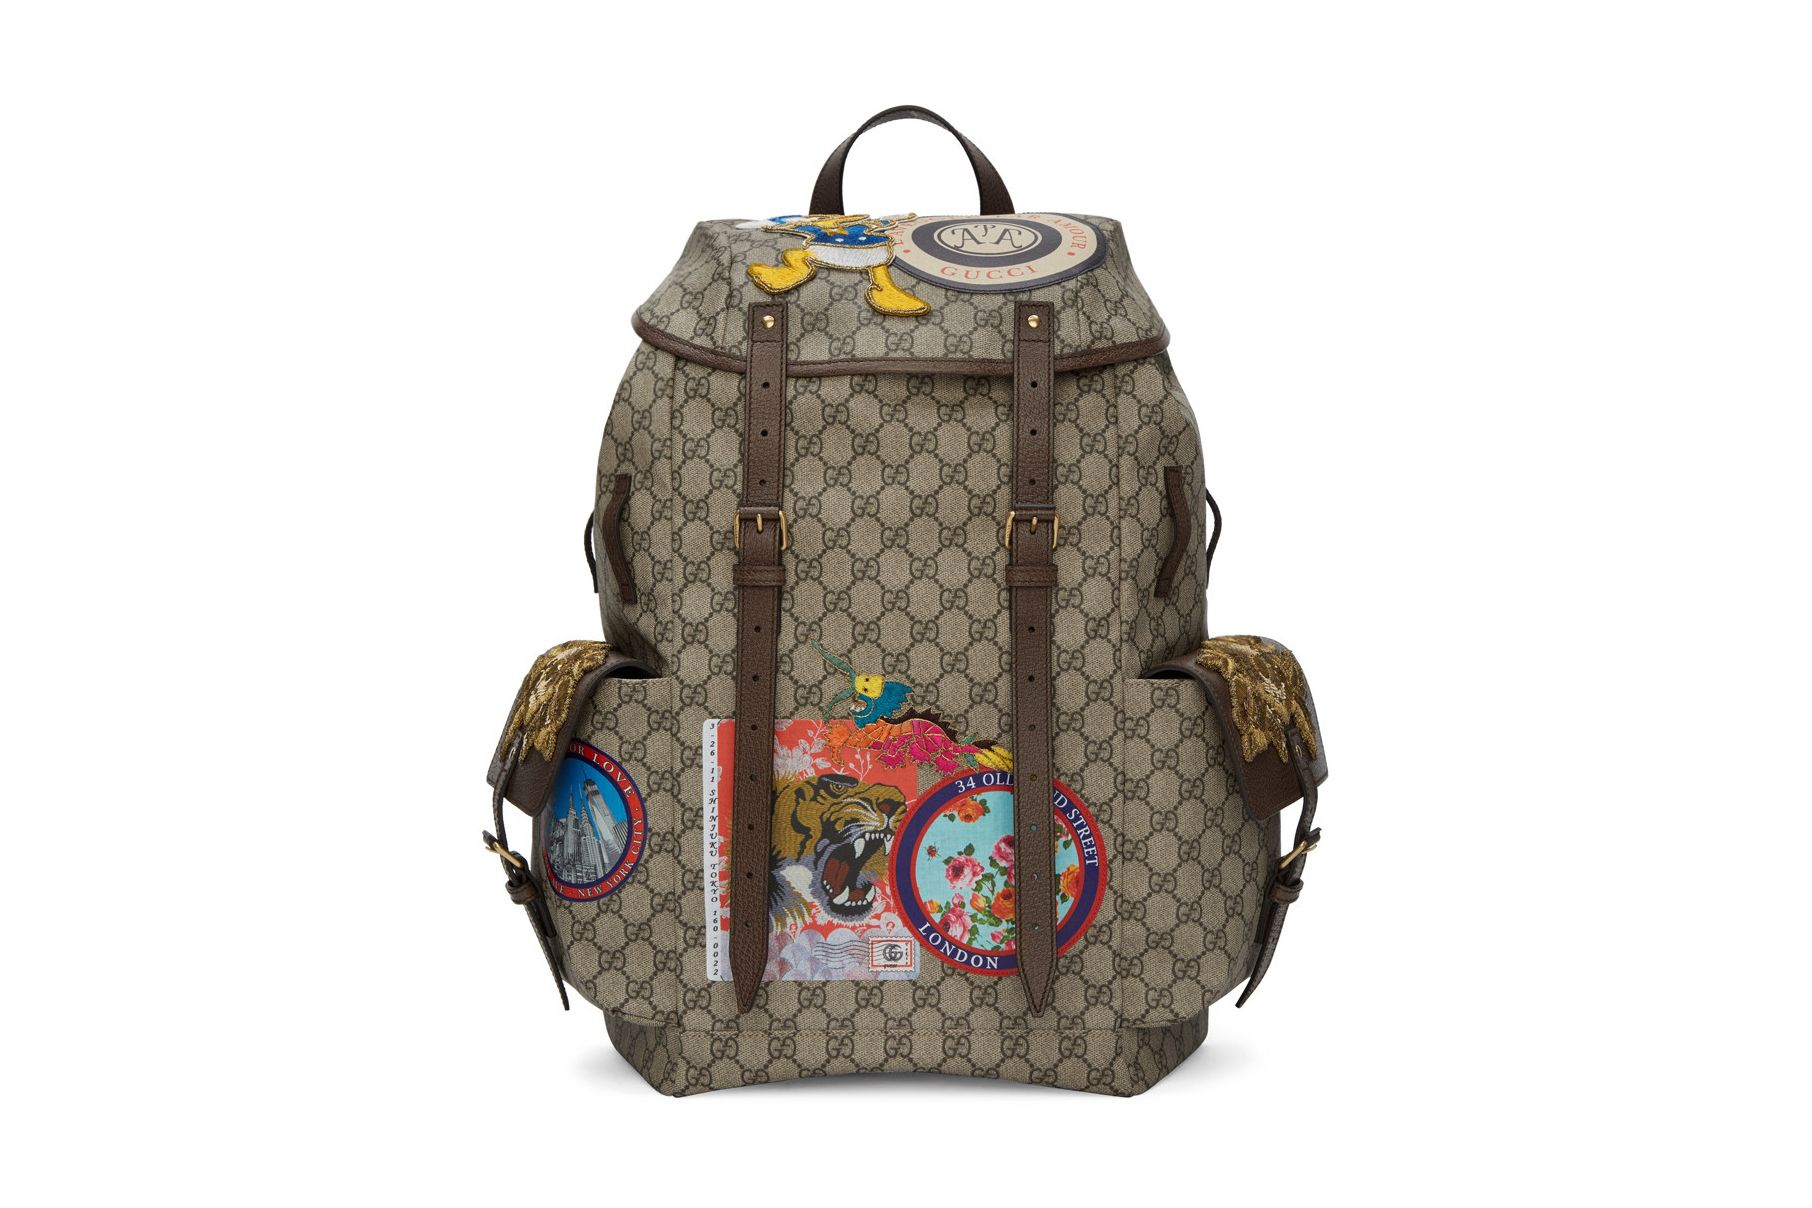 53ac98cc220b Here's the Perfect Backpack for the Gucci and Donald Duck Fan ...